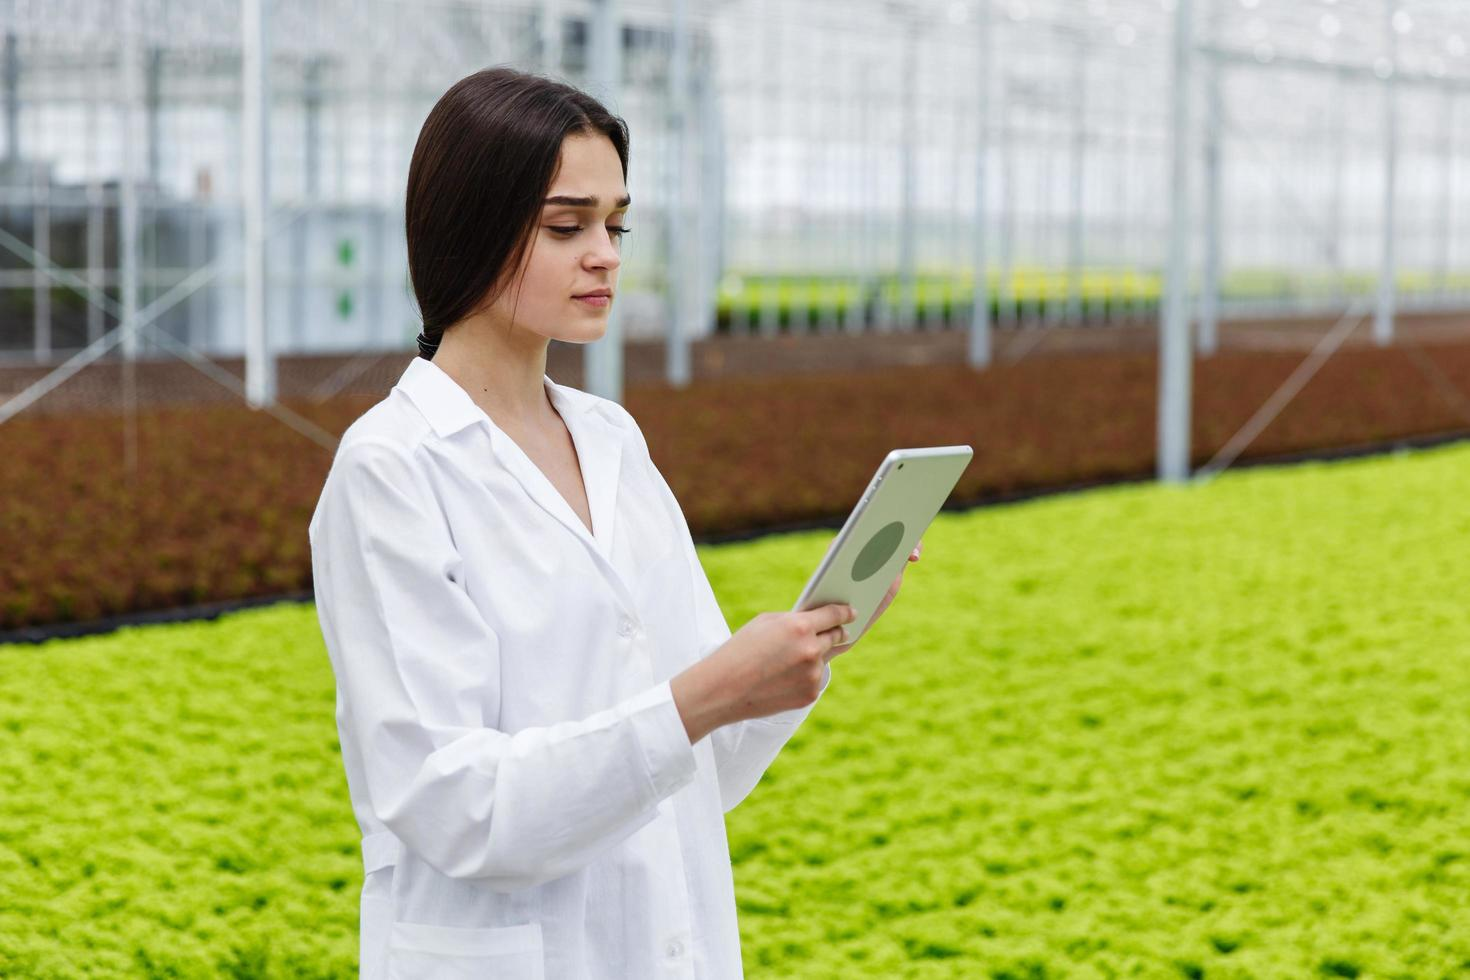 Female researcher holds a tablet photo